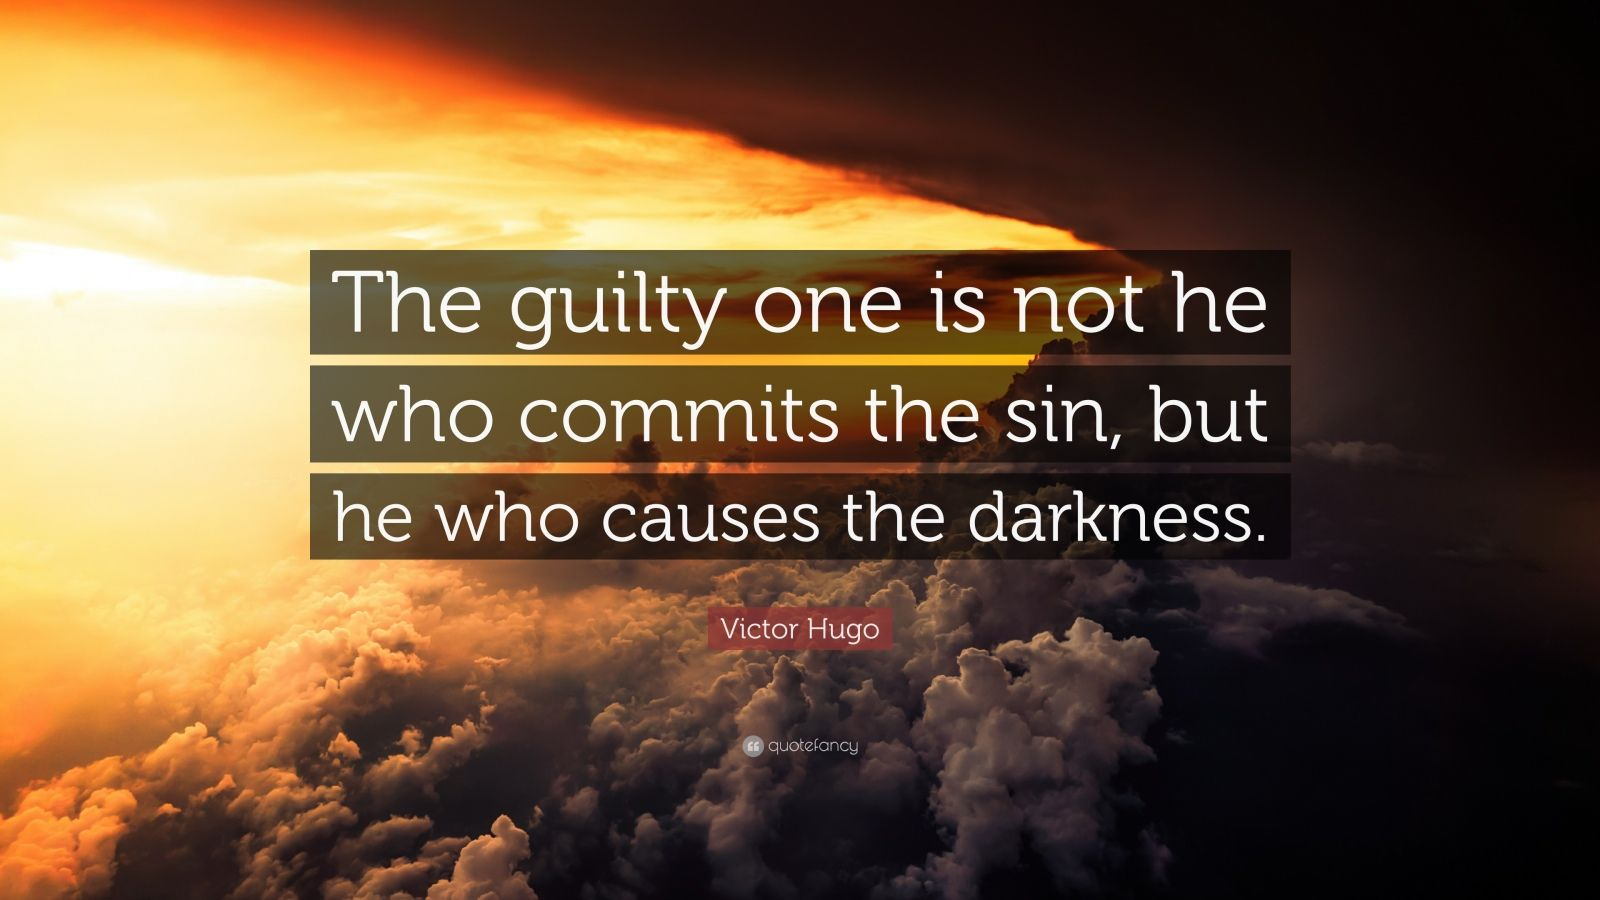 """Victor Hugo Quote: """"The guilty one is not he who commits the sin, but he who causes the darkness."""""""